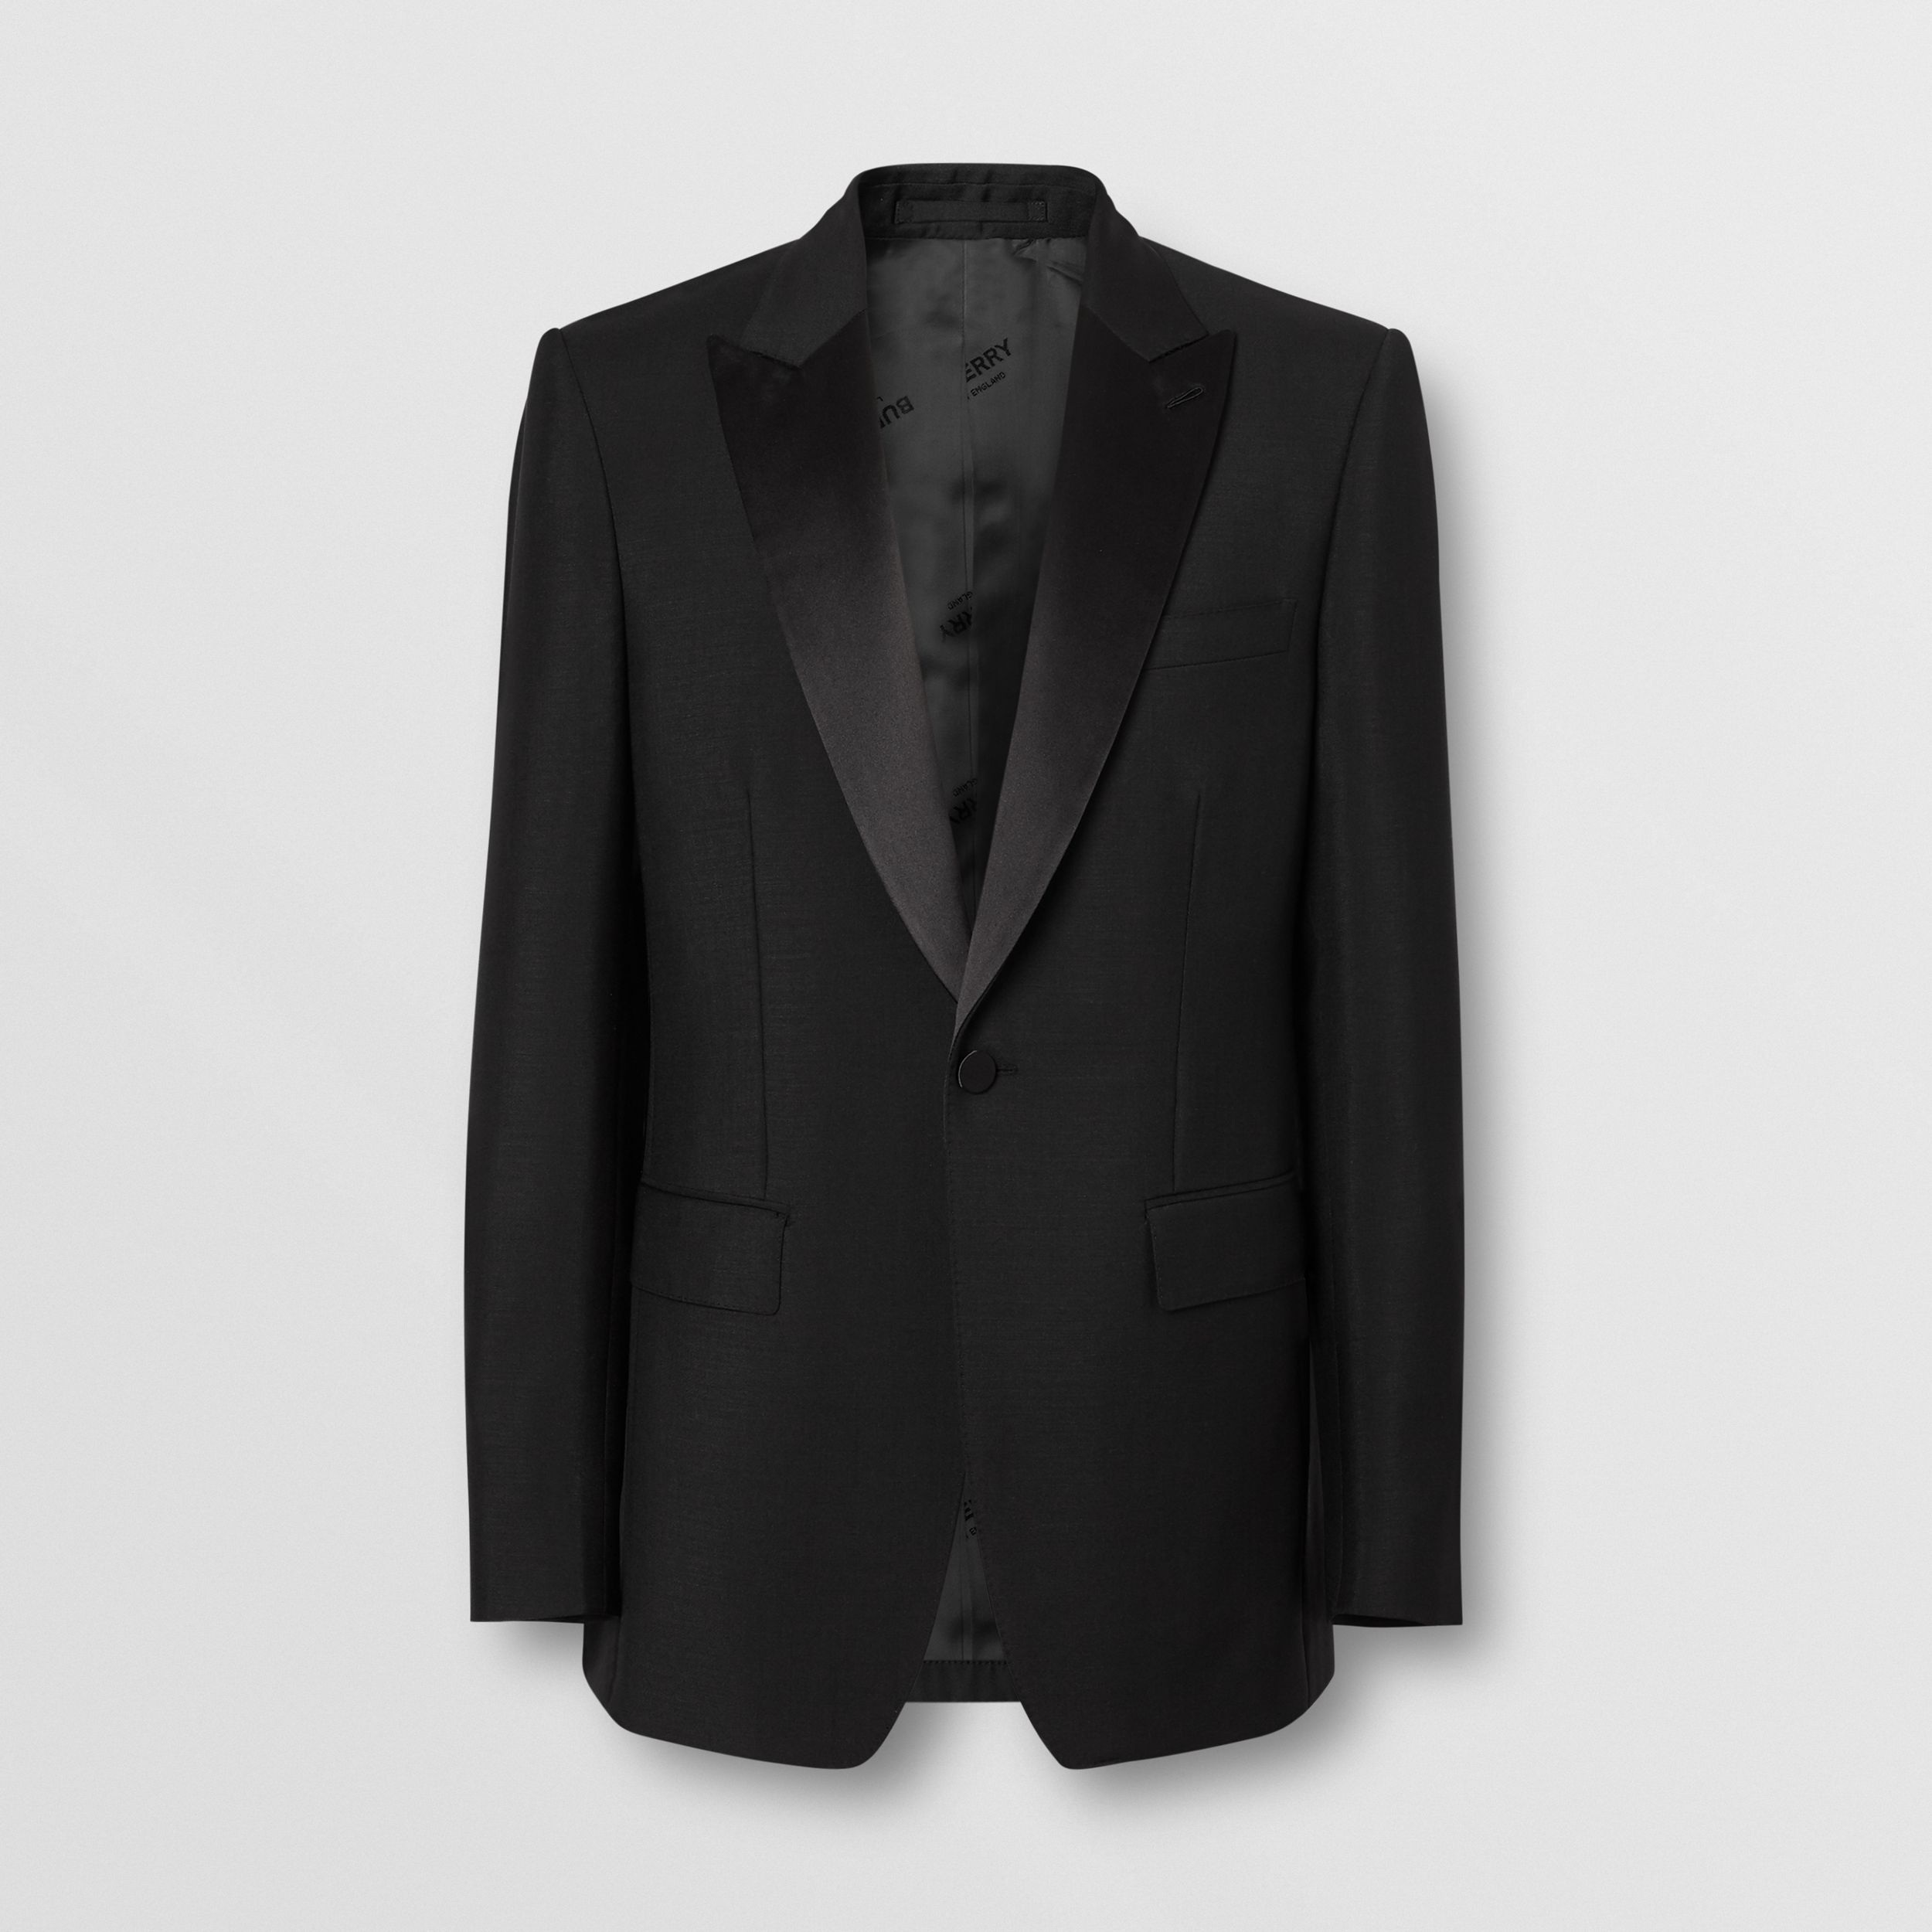 English Fit Mohair Wool Tuxedo in Black - Men | Burberry Hong Kong S.A.R. - 4